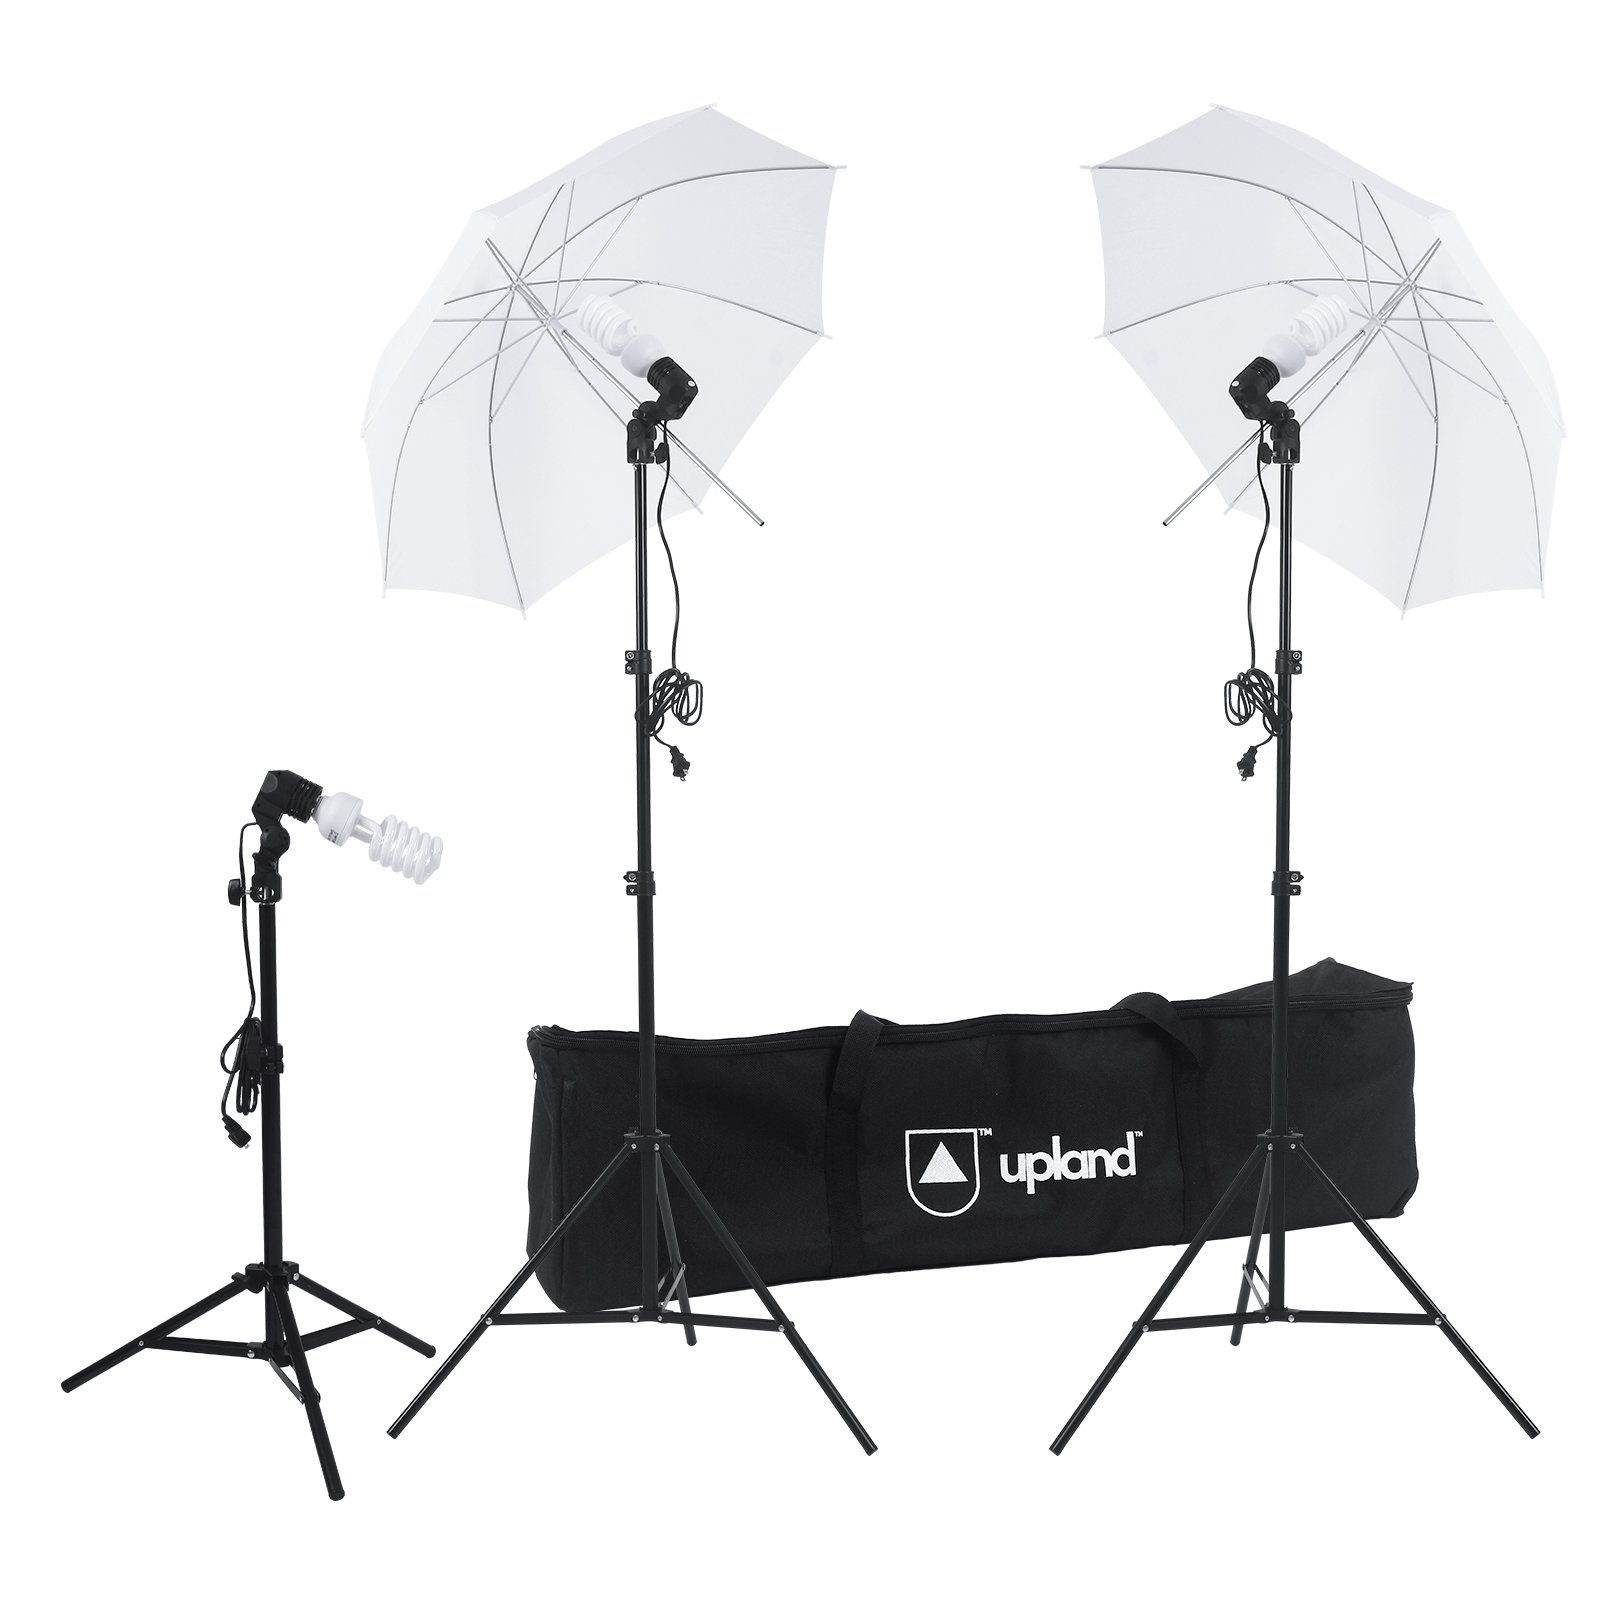 Upland Photography Umbrella Lighting Kit (Set of 3), White Translucent Continuous Bright Umbrella for Photo, Photography and Video Studio